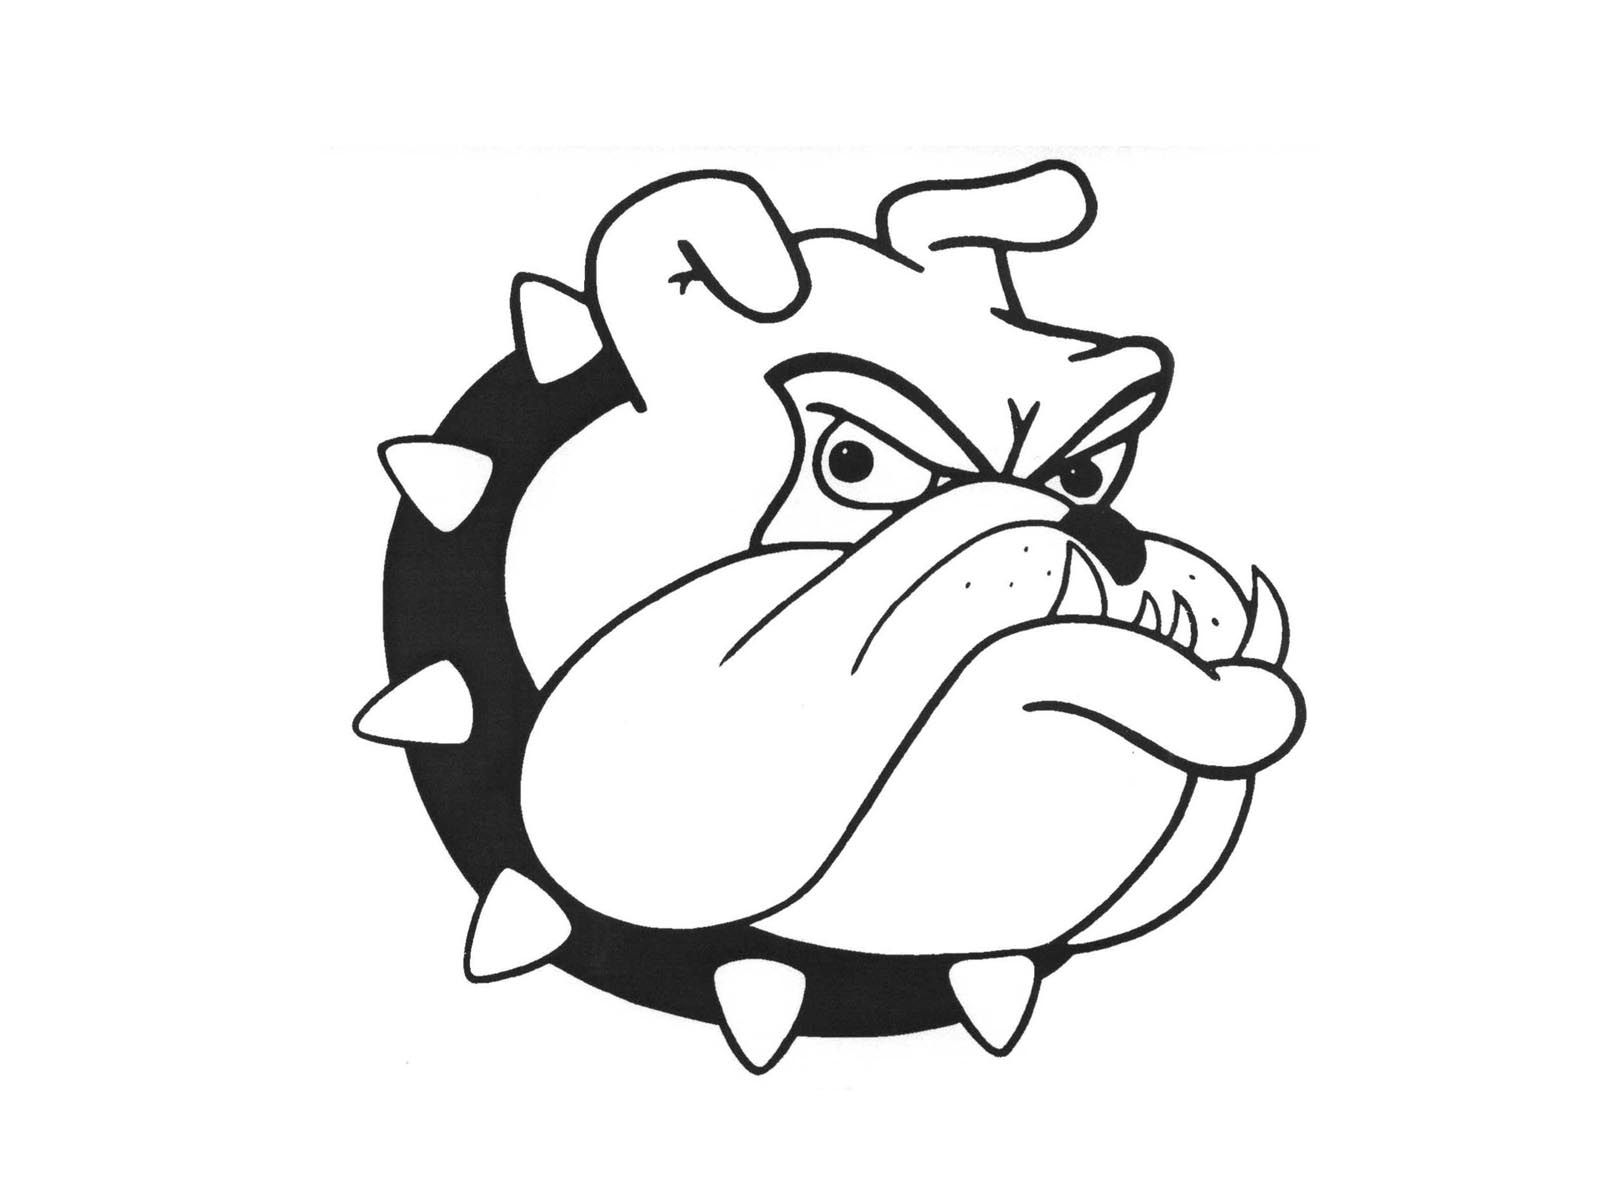 14 Cartoon Bulldog Images Free Cliparts That You Can